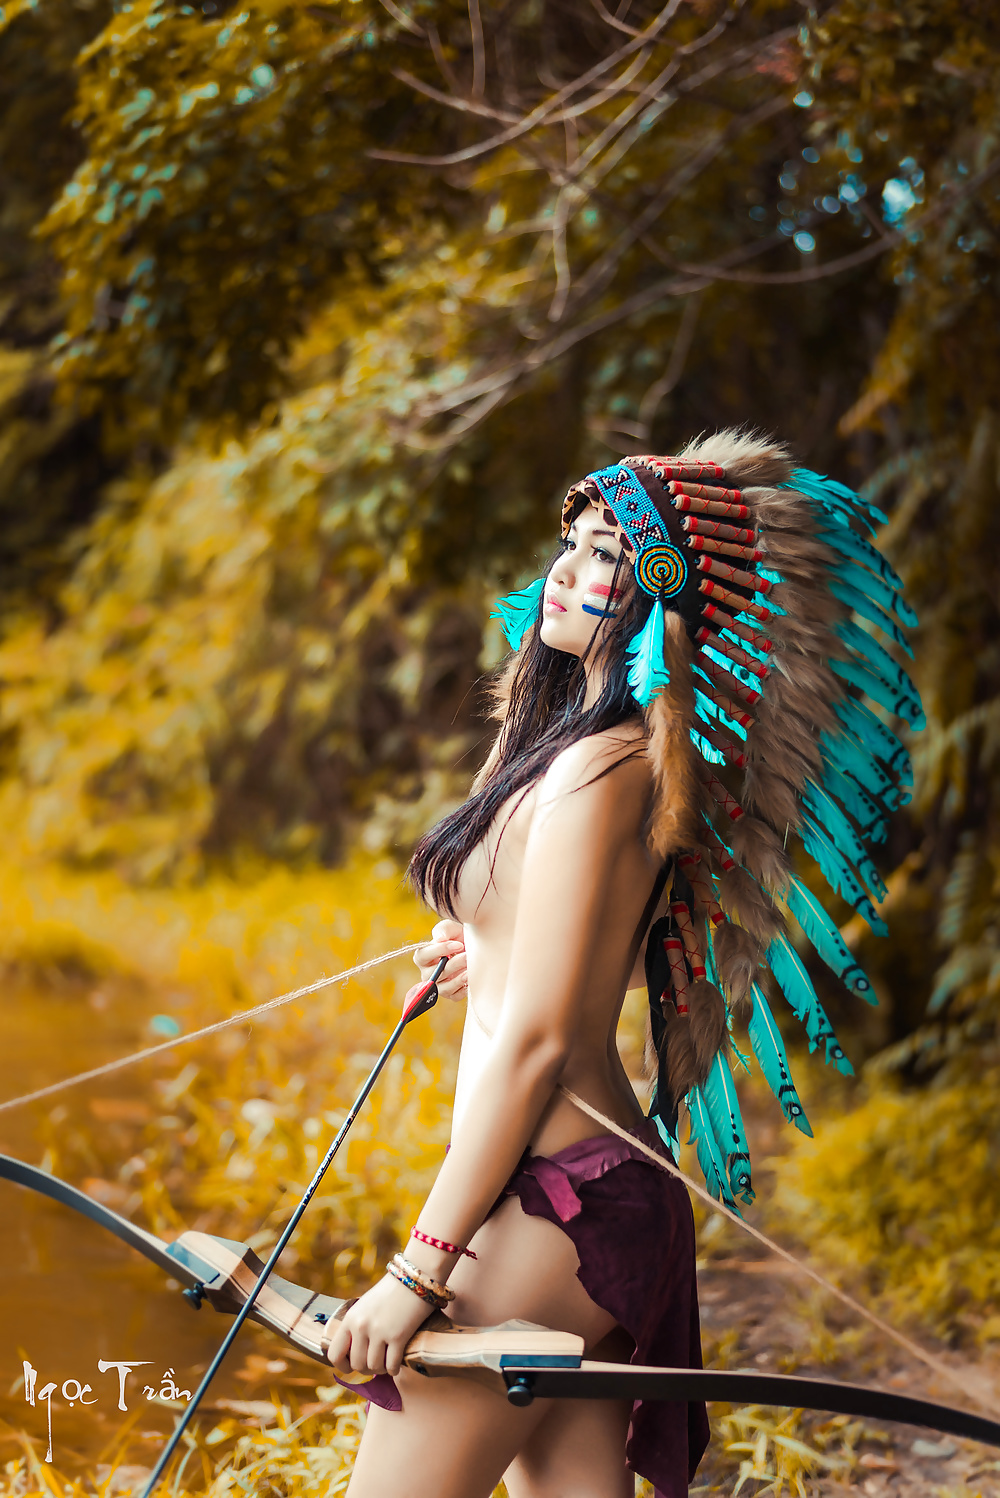 Hottest nude native girls 2